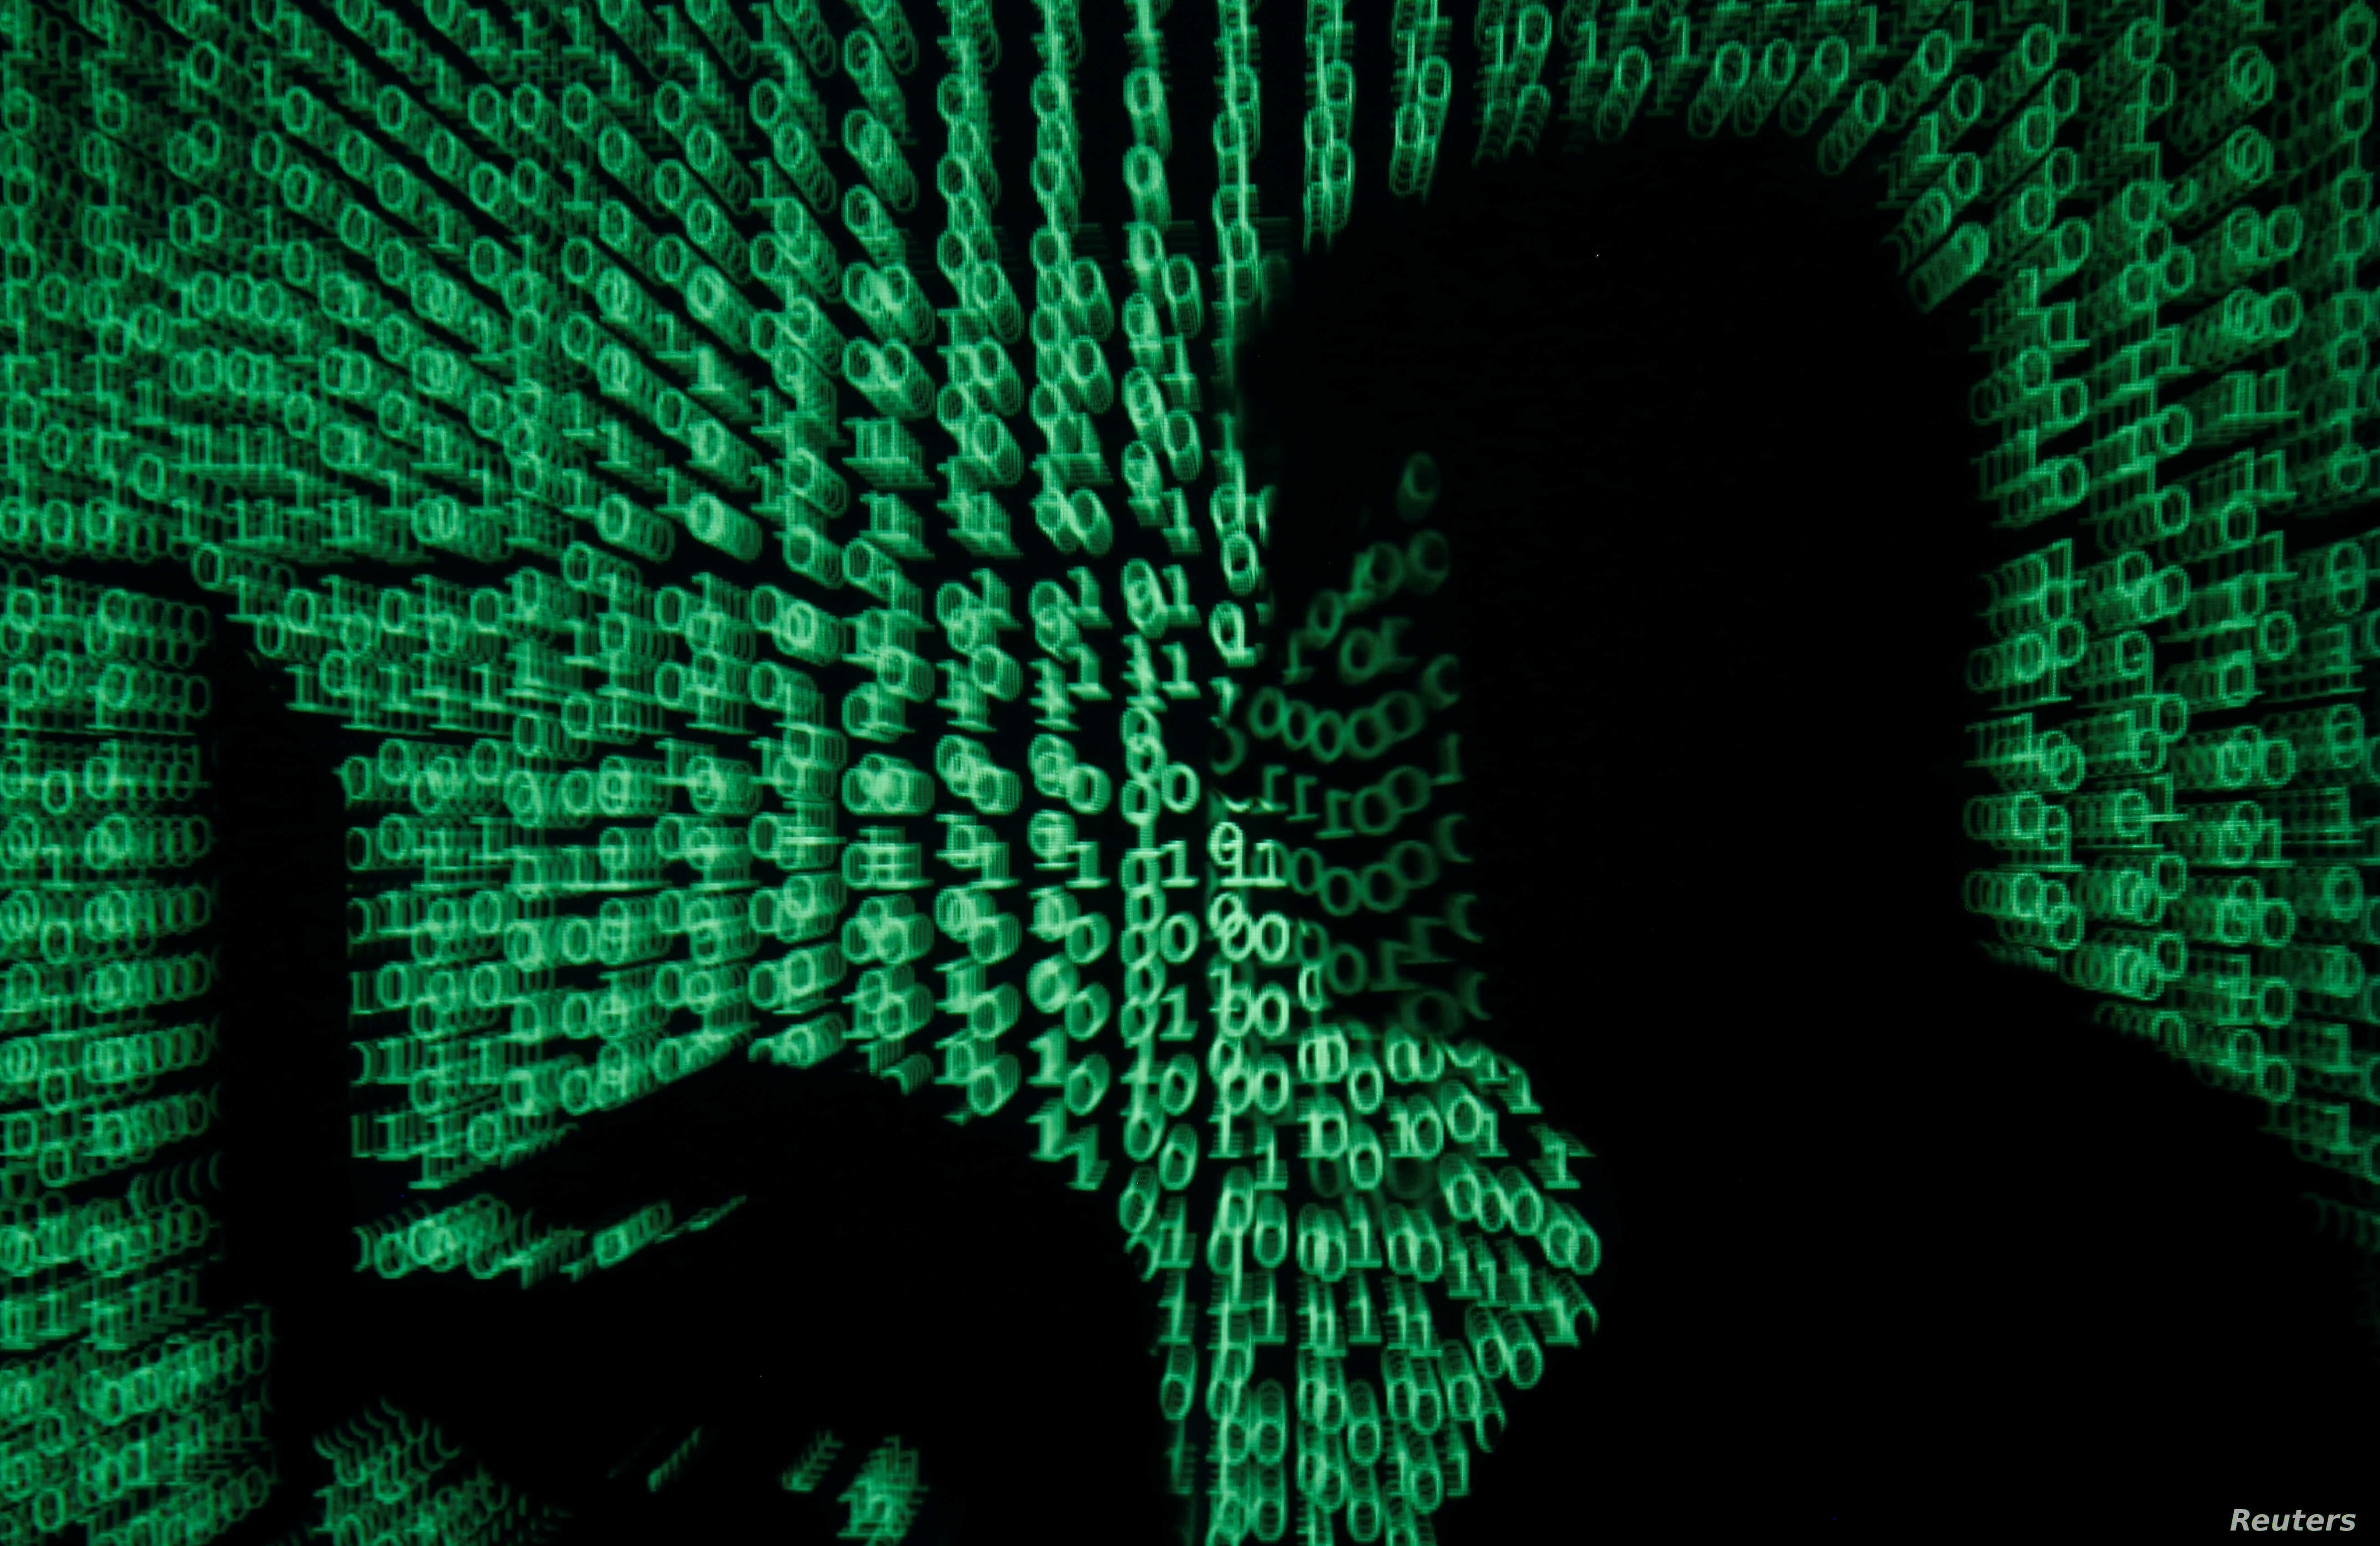 A man holds a laptop computer as code is projected on him in this illustration made on May 13, 2017. Capitalizing on spying tools believed to have been developed by the U.S. National Security Agency, hackers staged a cyberassault with a self-spreadin